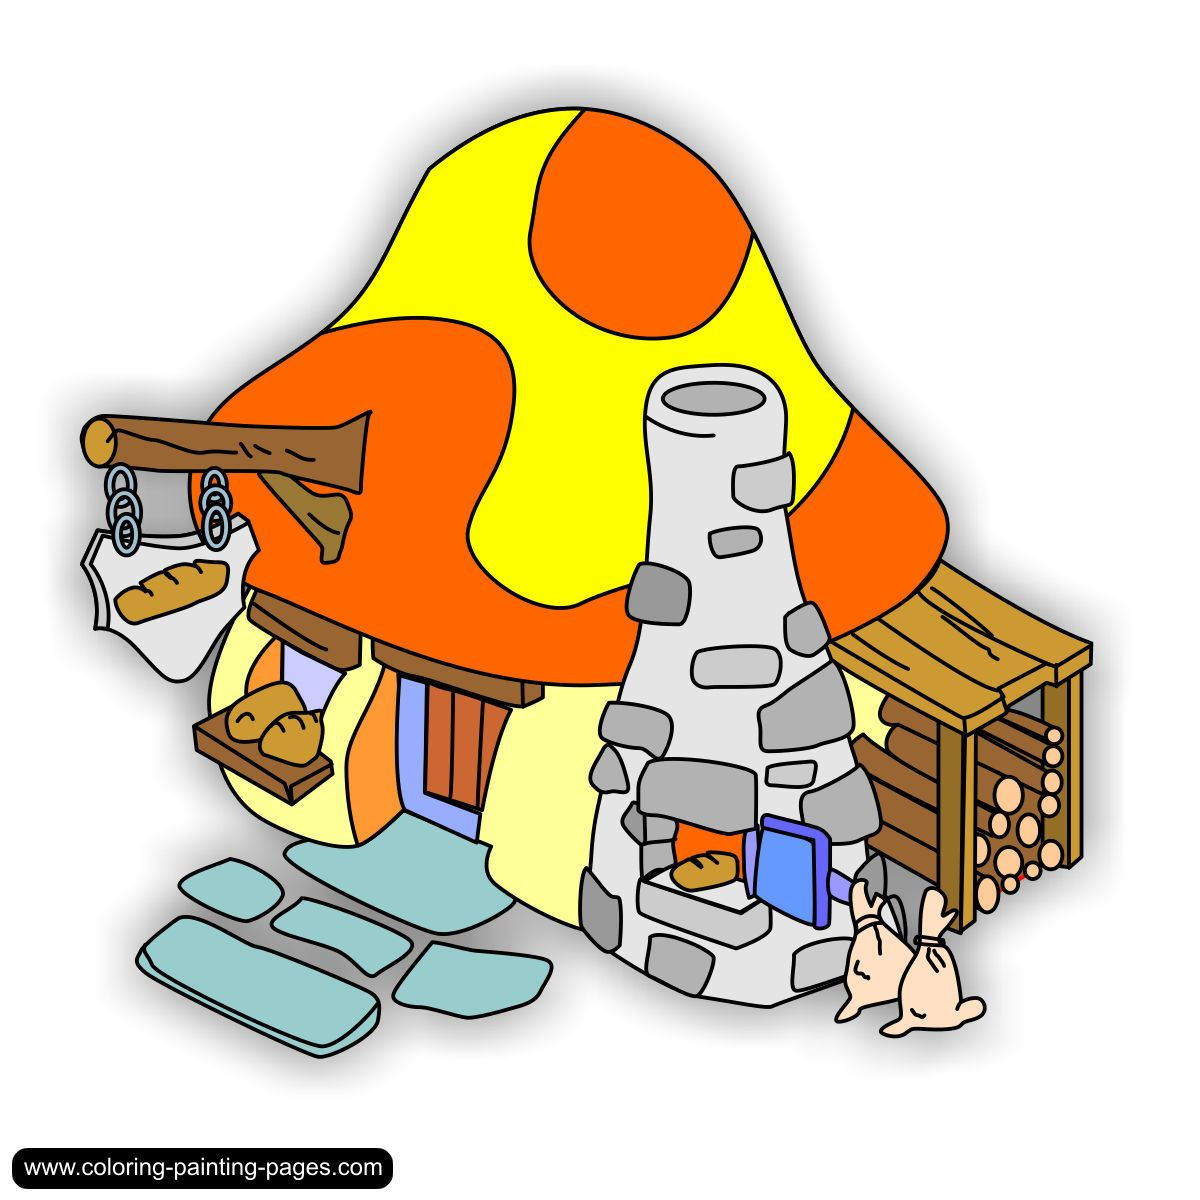 Cartoon Characters Houses : Pin by kelly brown on smurfs pinterest village houses